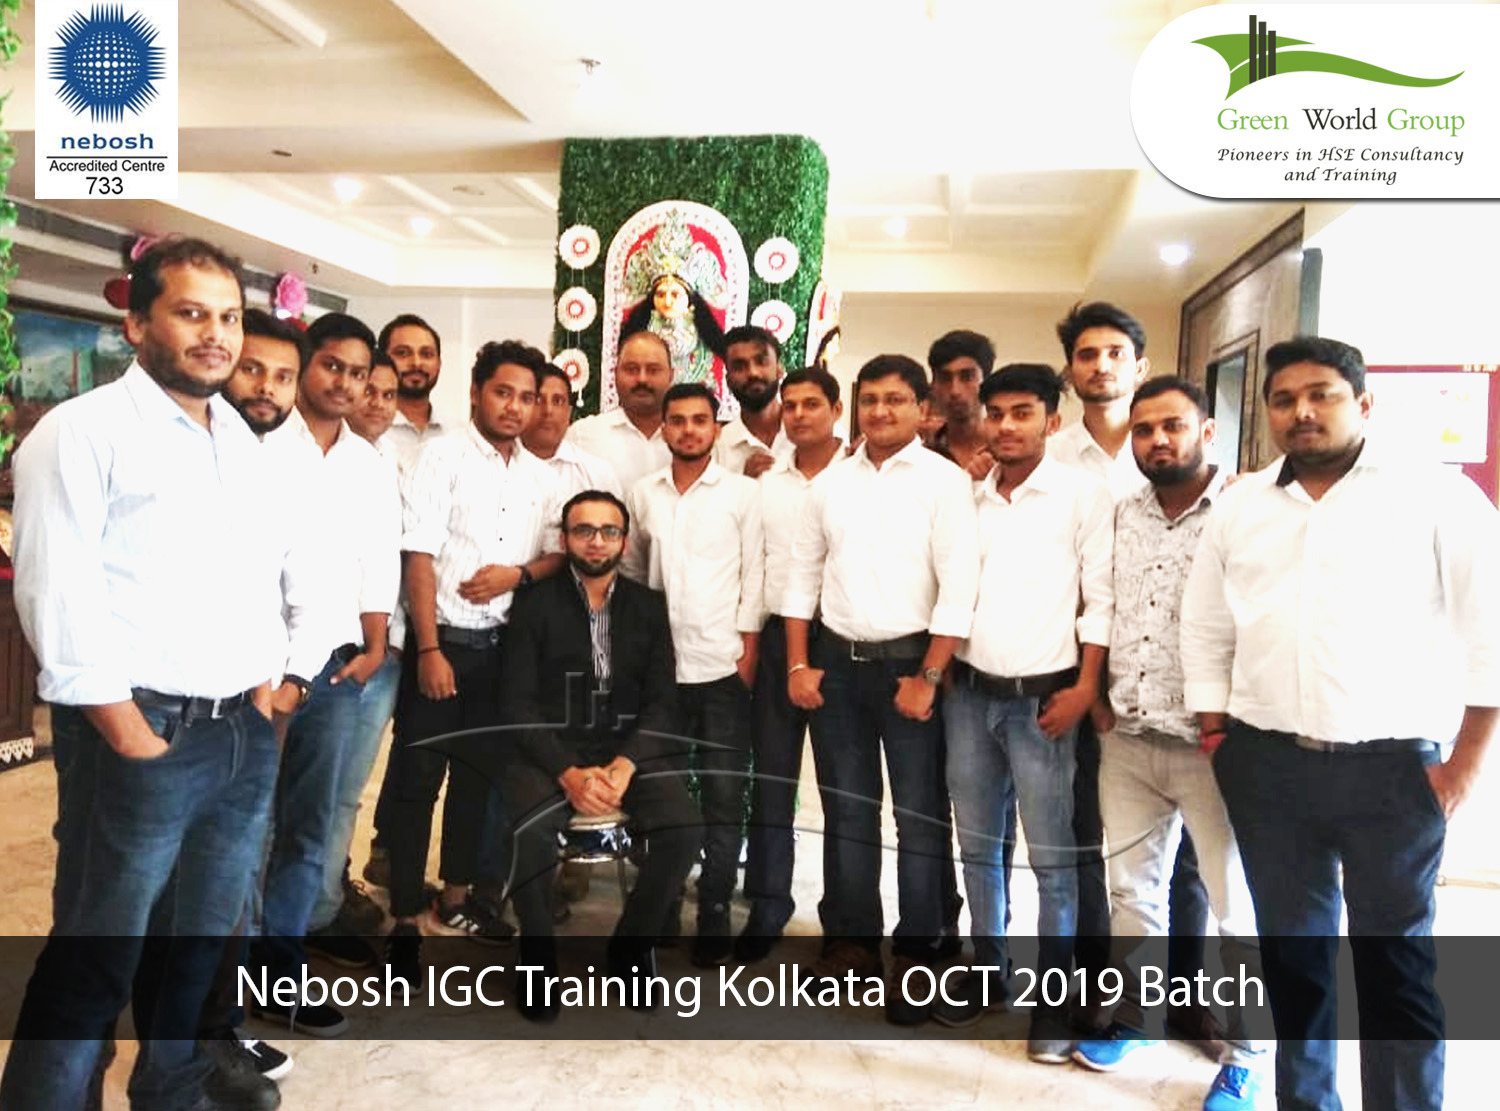 Nebosh IGC Training Kolkata OCT 2019 Batch